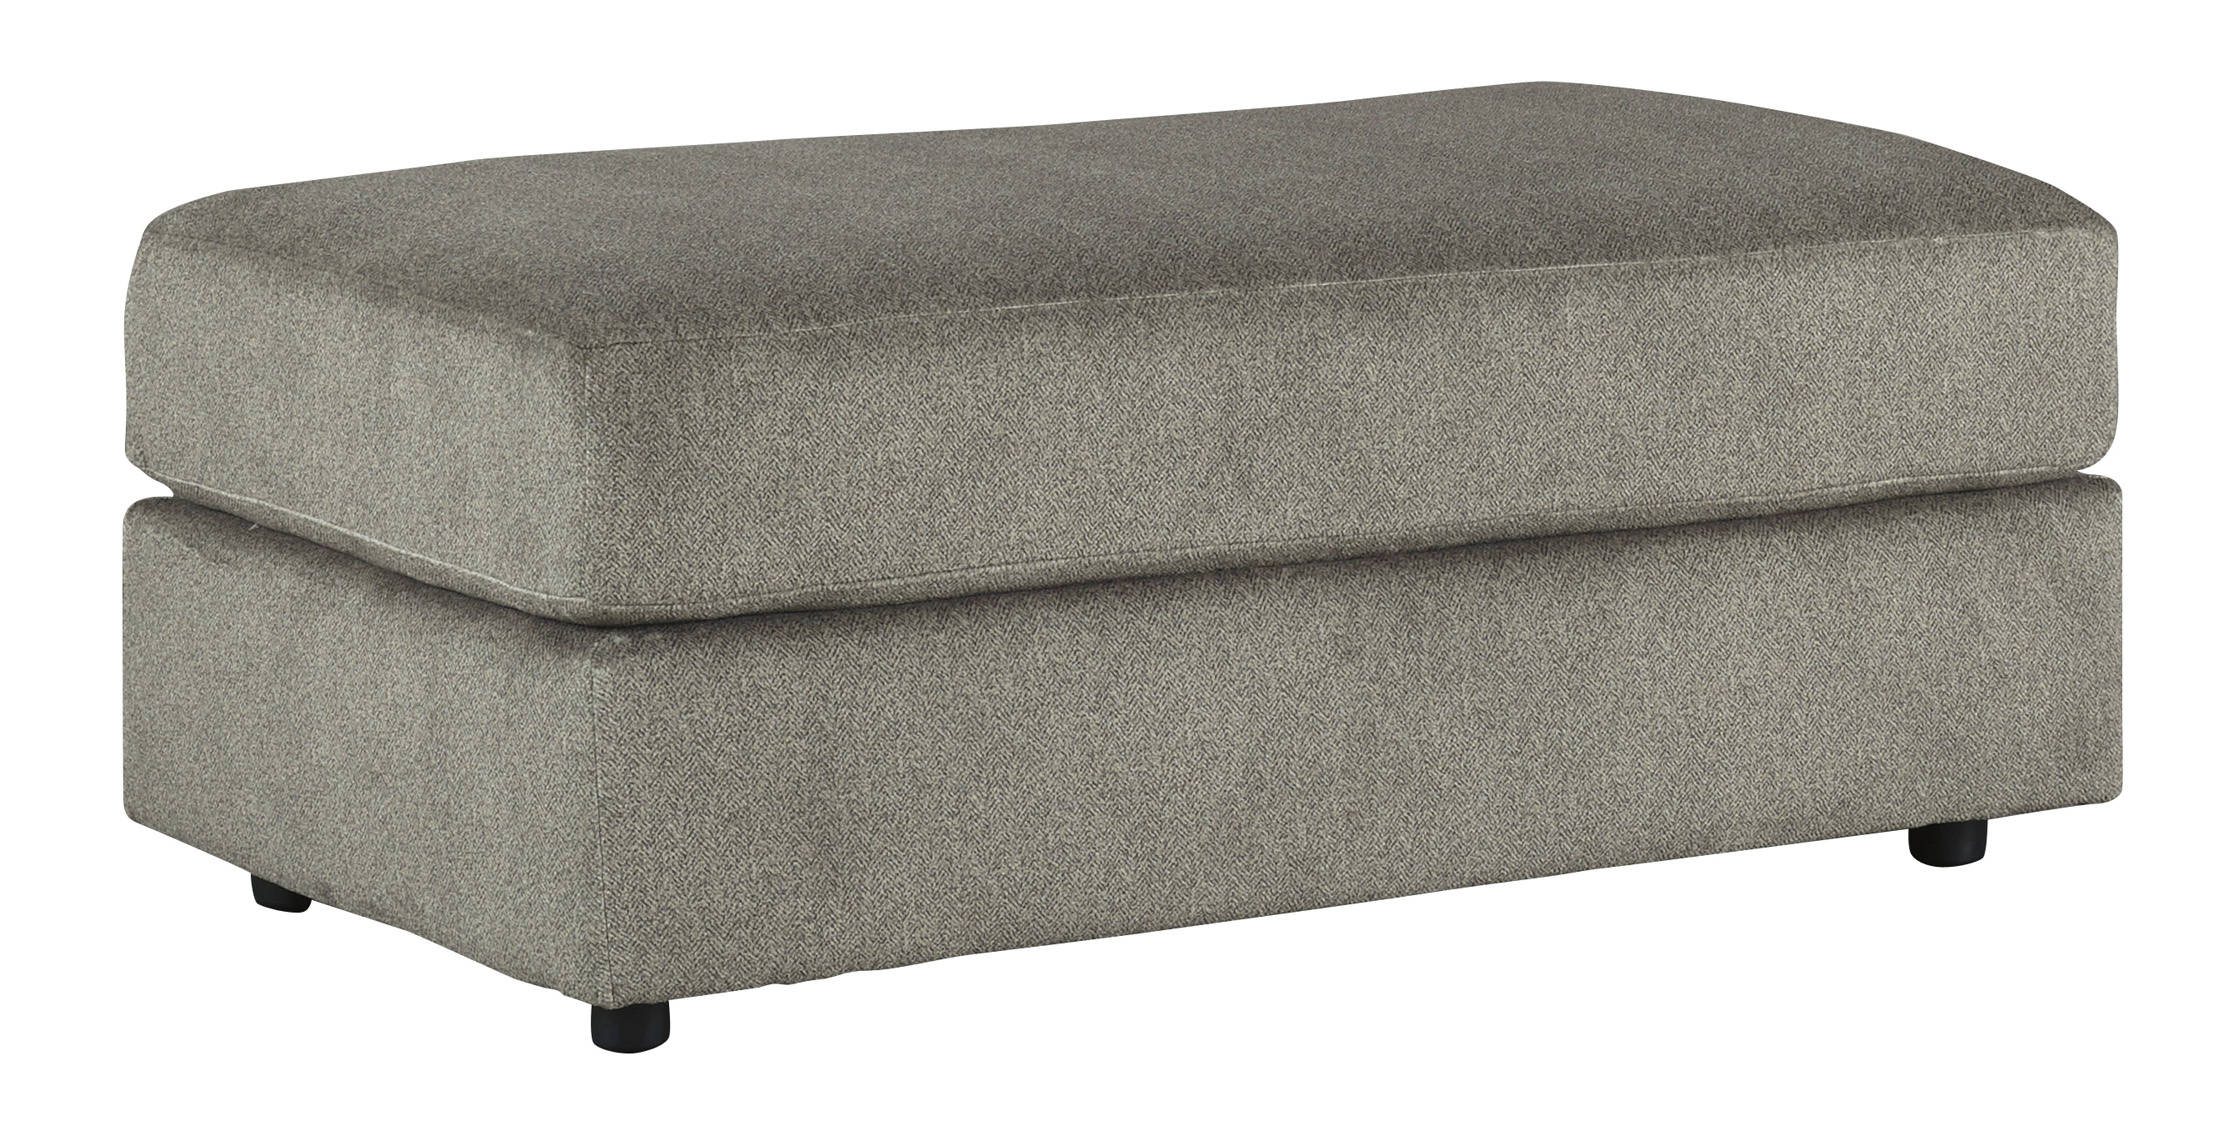 Ashley Furniture Soletren Ash Oversized Accent Ottoman The Classy Home